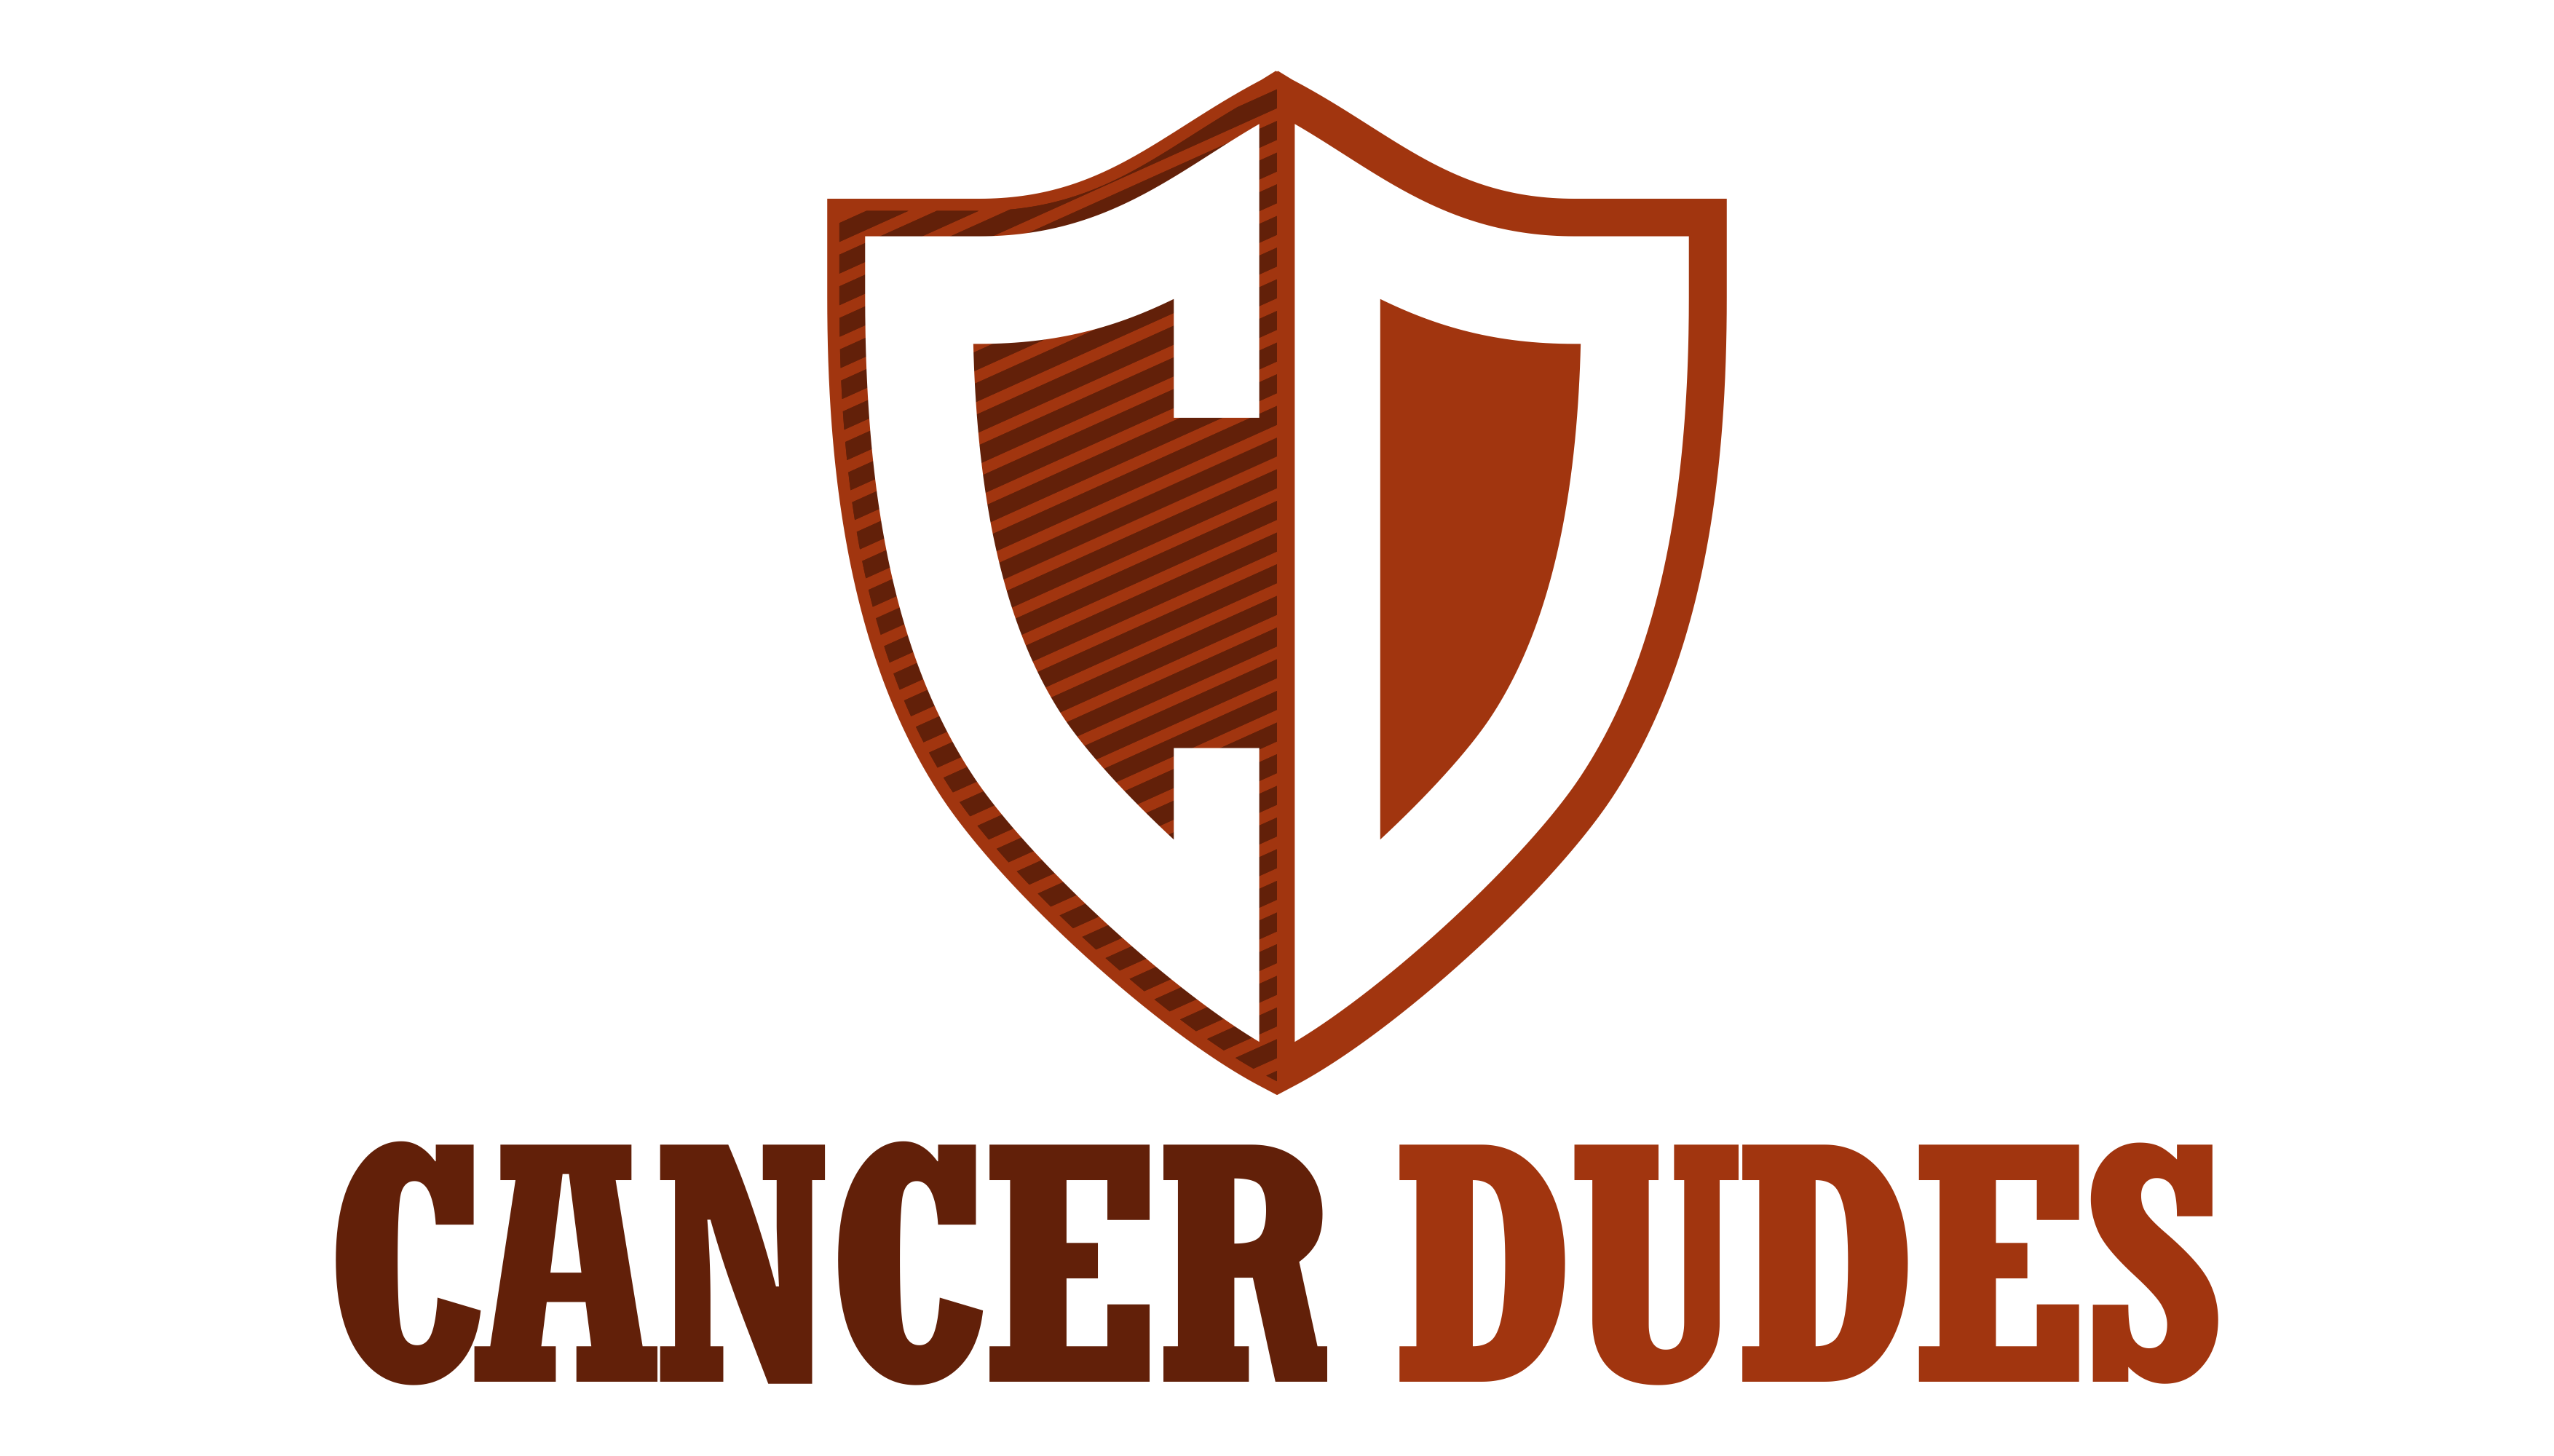 Cancer Dudes